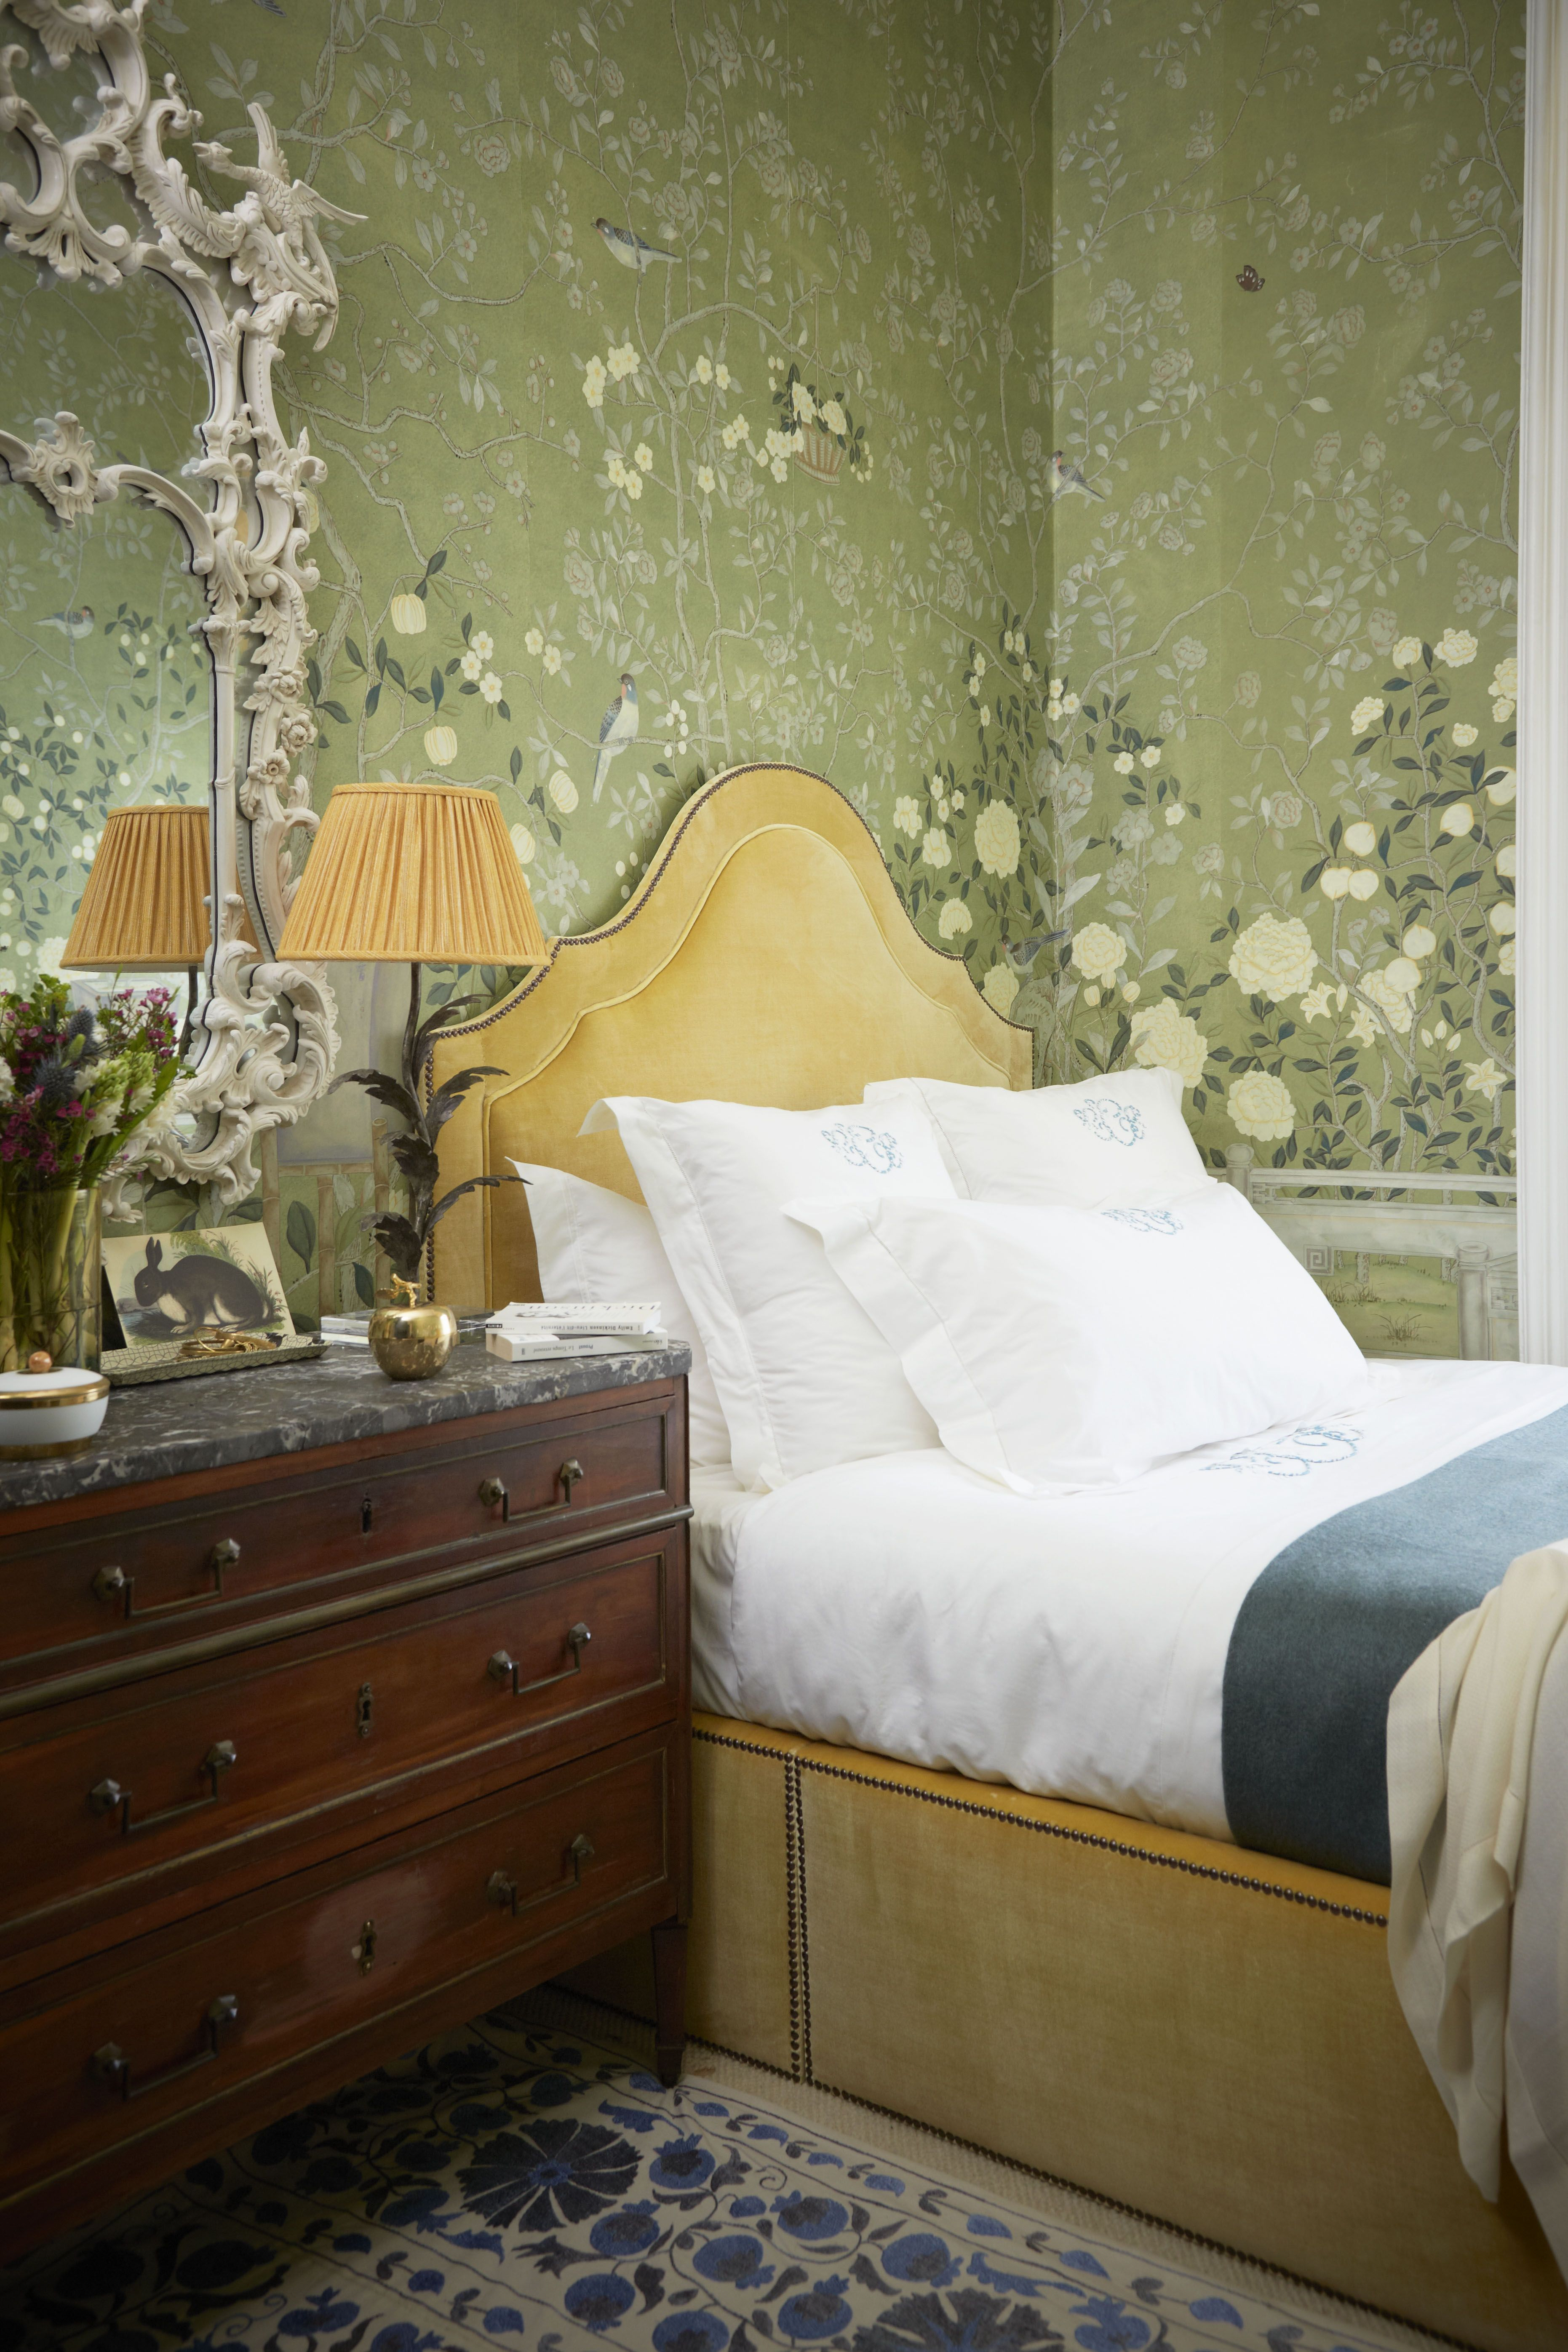 London Wallpaper Bedroom The London Home Of Hannah Cecil Gurney This Weekend Cas And The